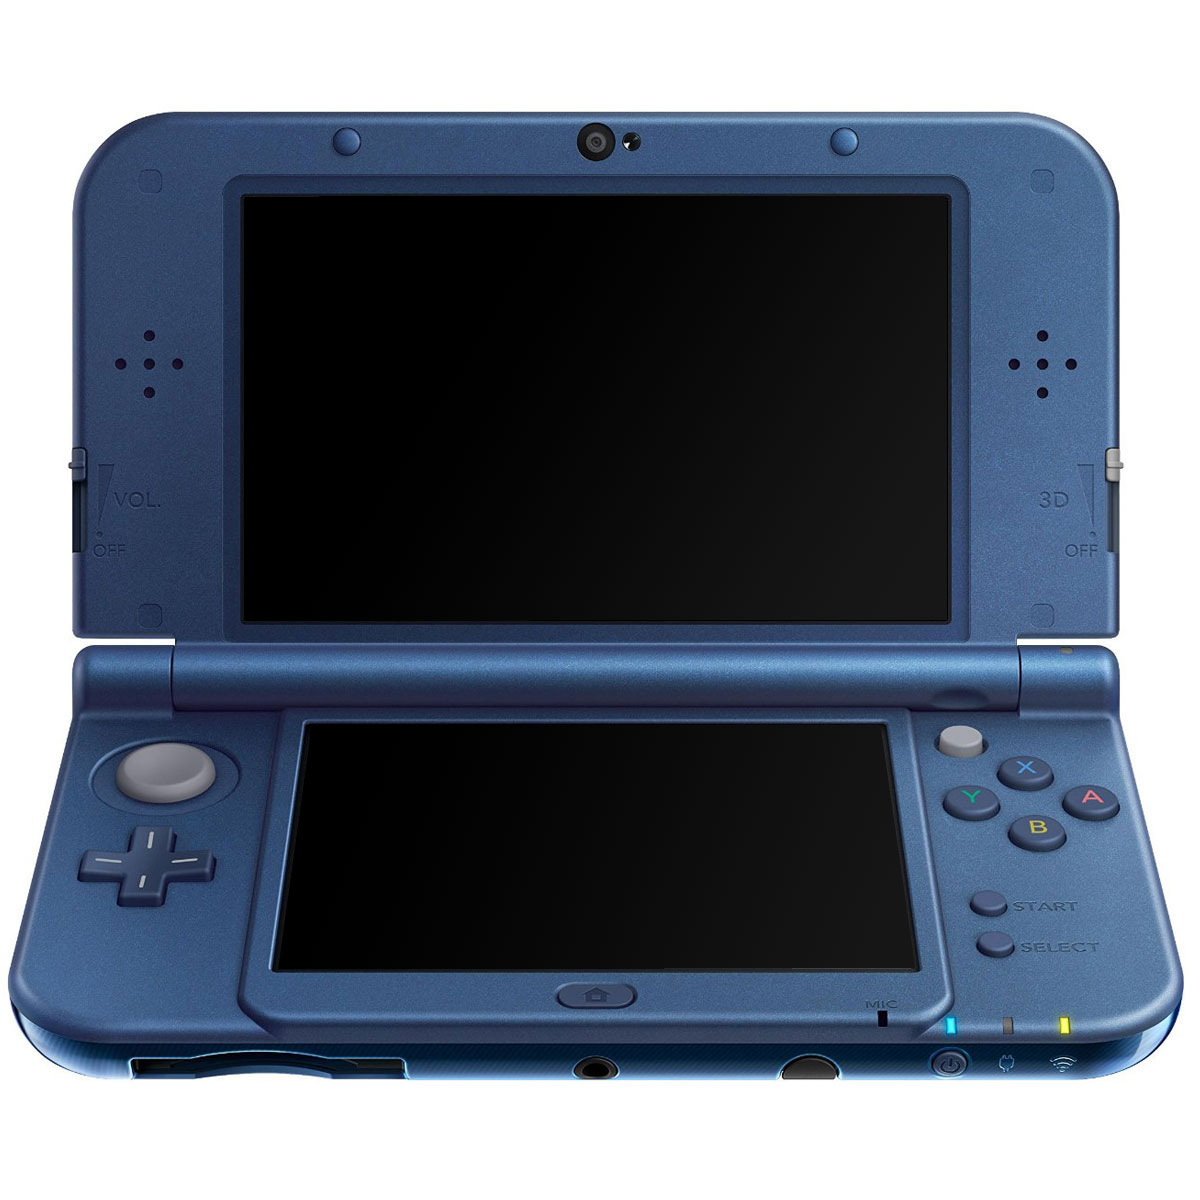 nintendo new 3ds xl bleue console nintendo 3ds. Black Bedroom Furniture Sets. Home Design Ideas